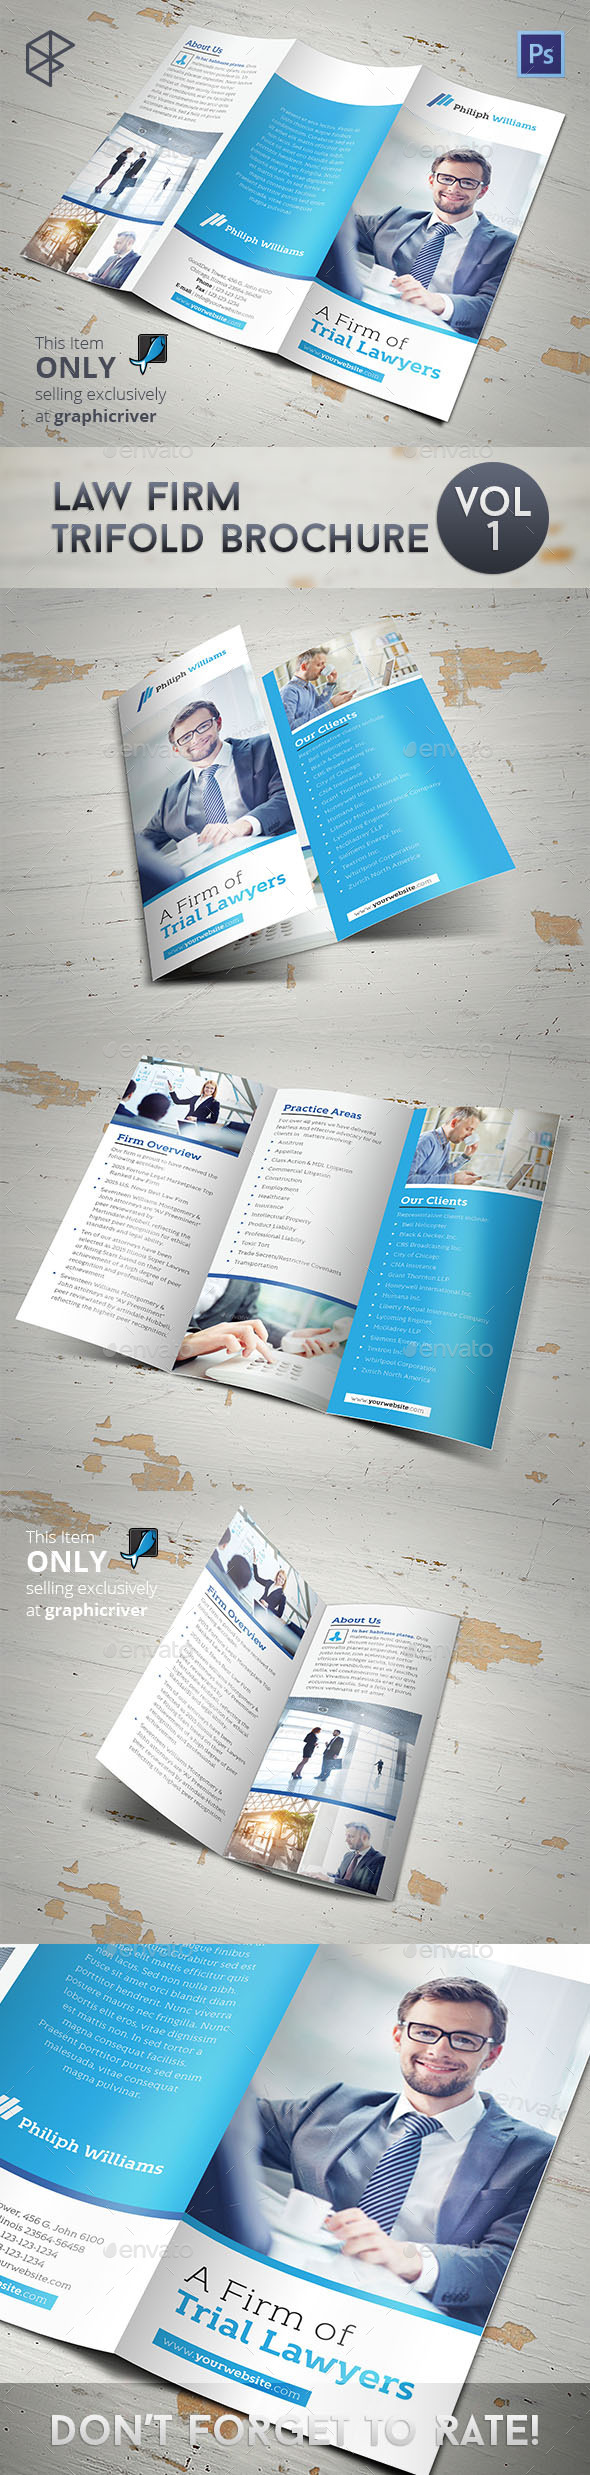 GraphicRiver Law Firm Trifold Brochure 11923607